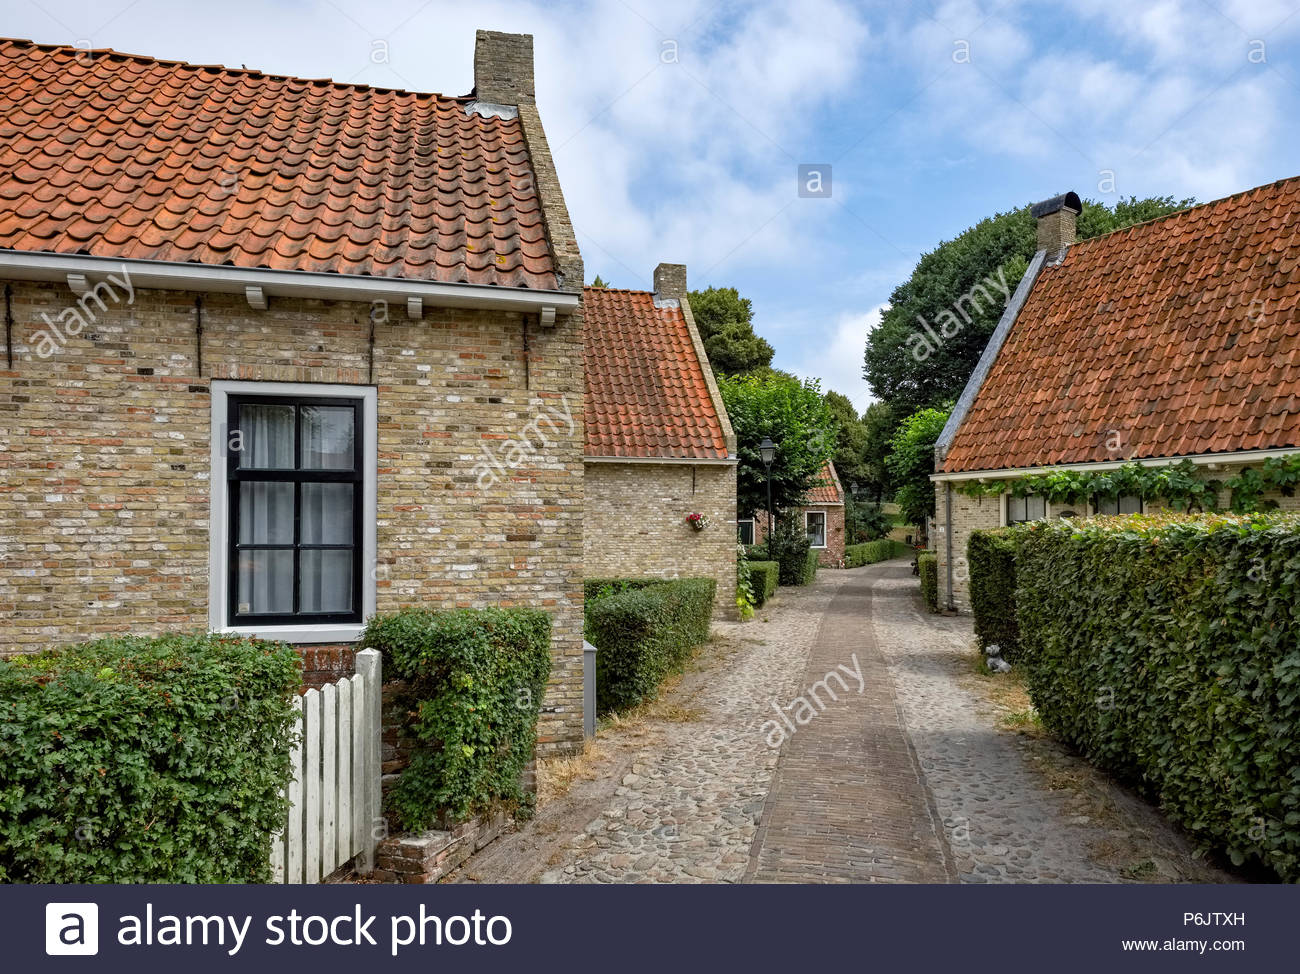 A cobblestone path runs between brick houses in the village at Vesting Bourtange, the star-shaped fortress in Groningen Province, The Netherlands. - Stock Image